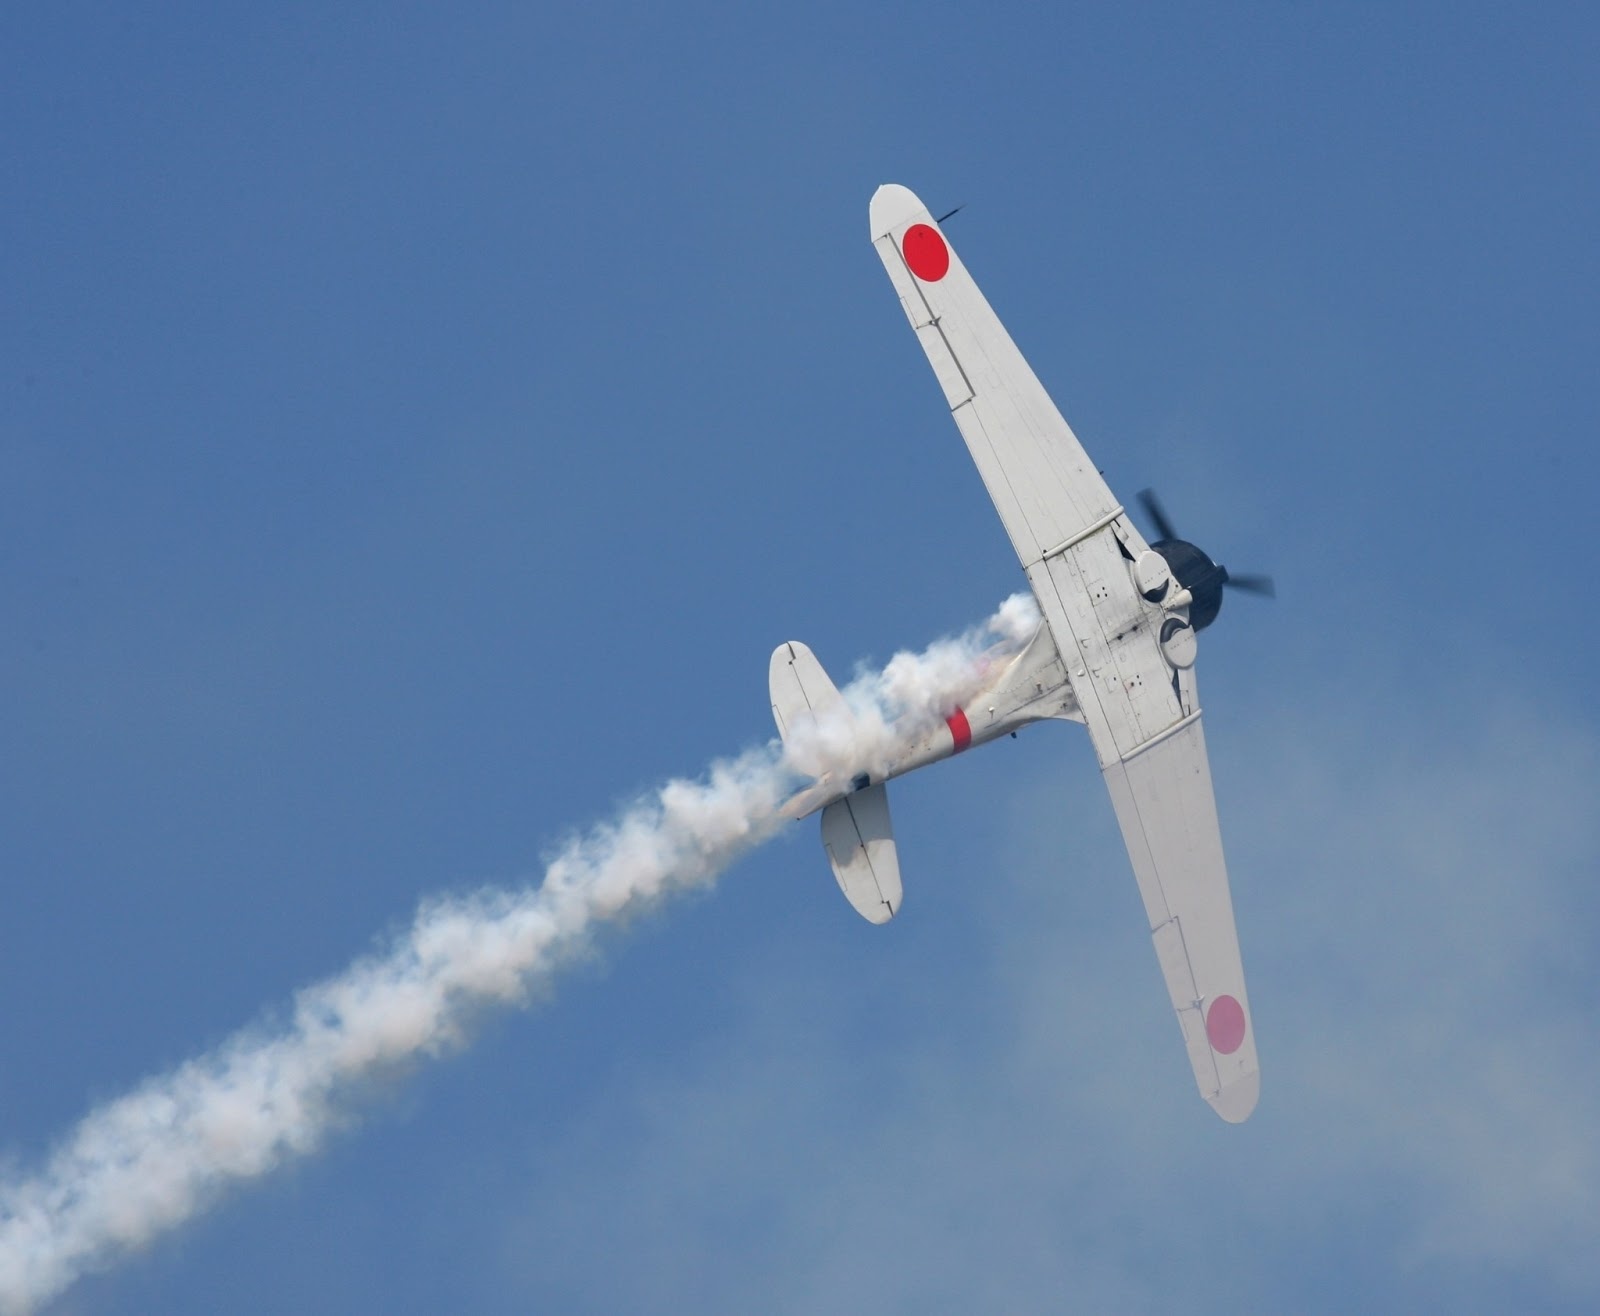 tora tora tora essay Tora tora tora essays tora tora tora was the attack code name given to japanese fighter pilots to use to signal the green light to commanders in prior to.